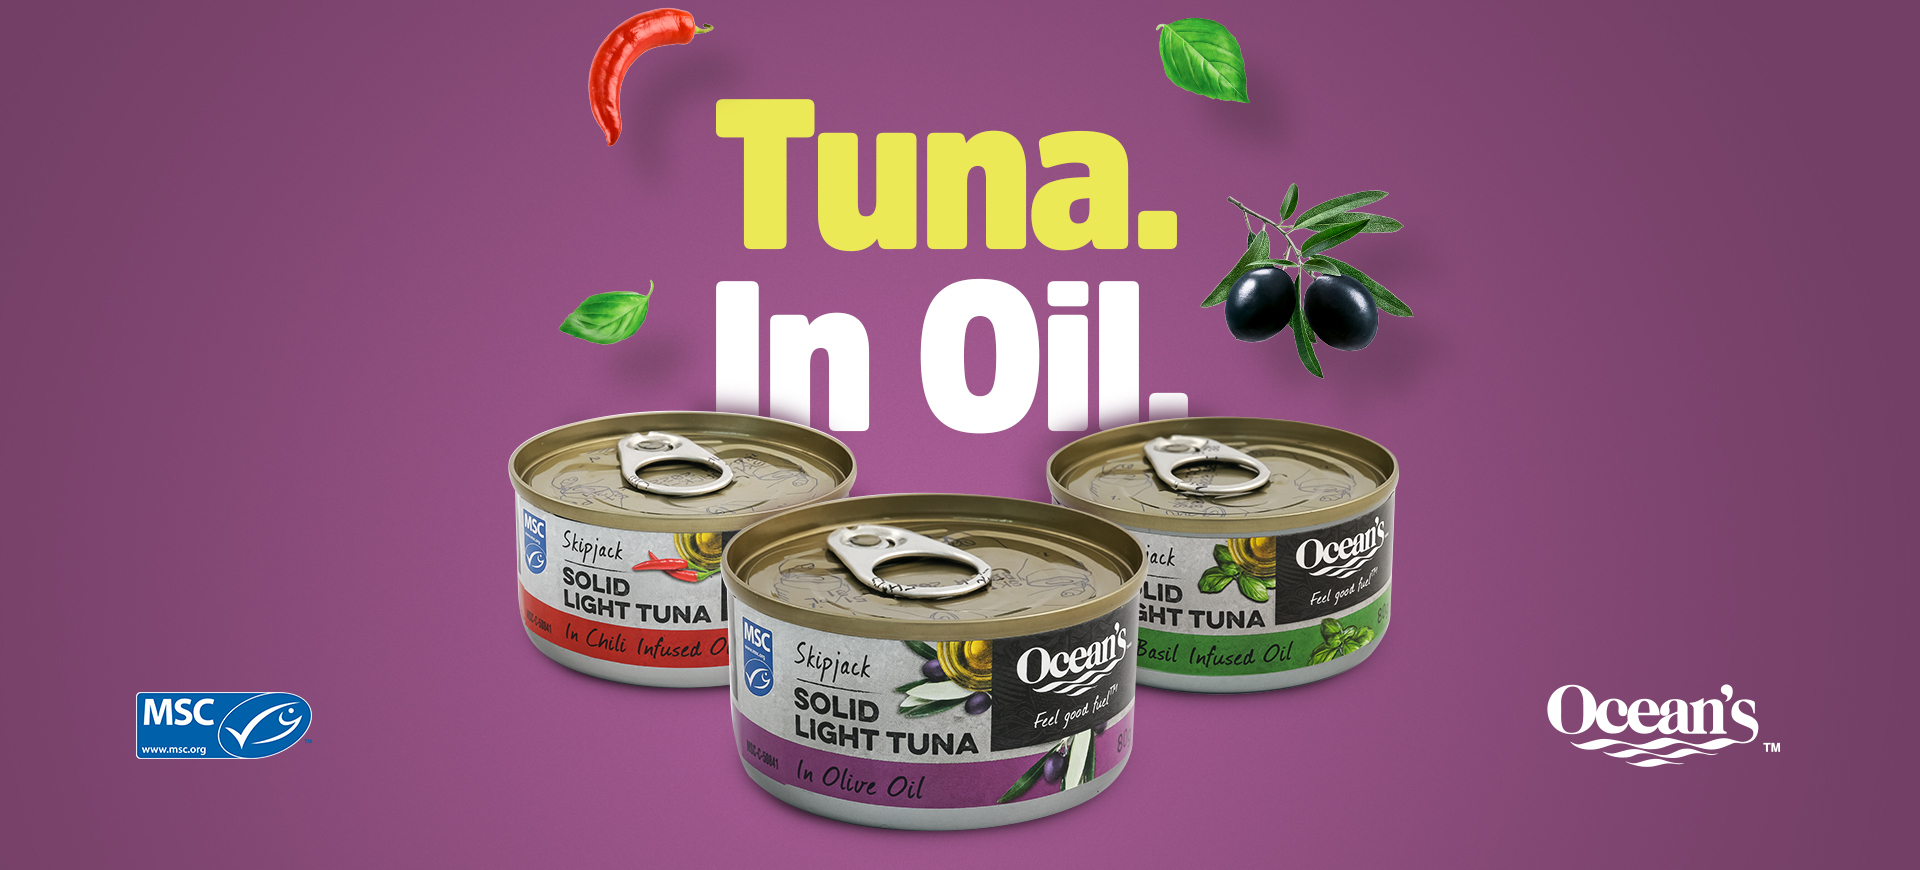 The Flavours of Tuna in Oil